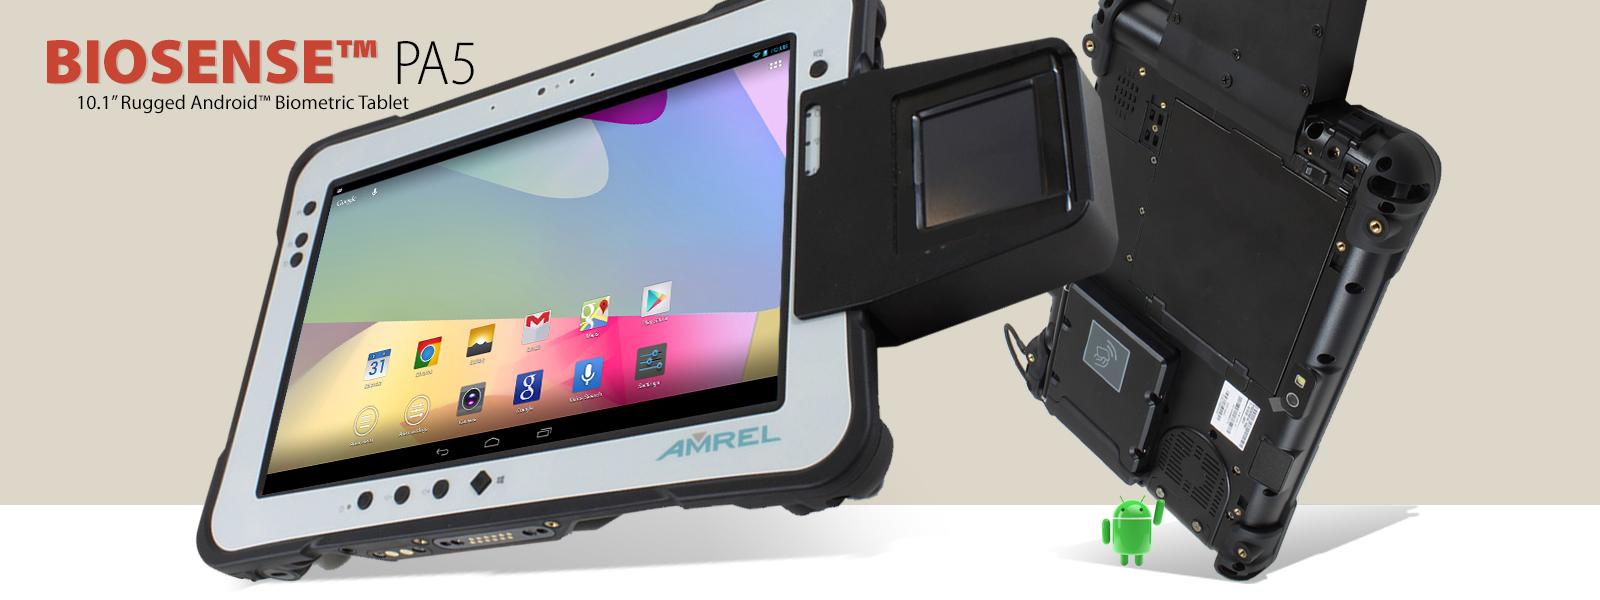 Rugged Biometric Tablets (Android)   AMREL com